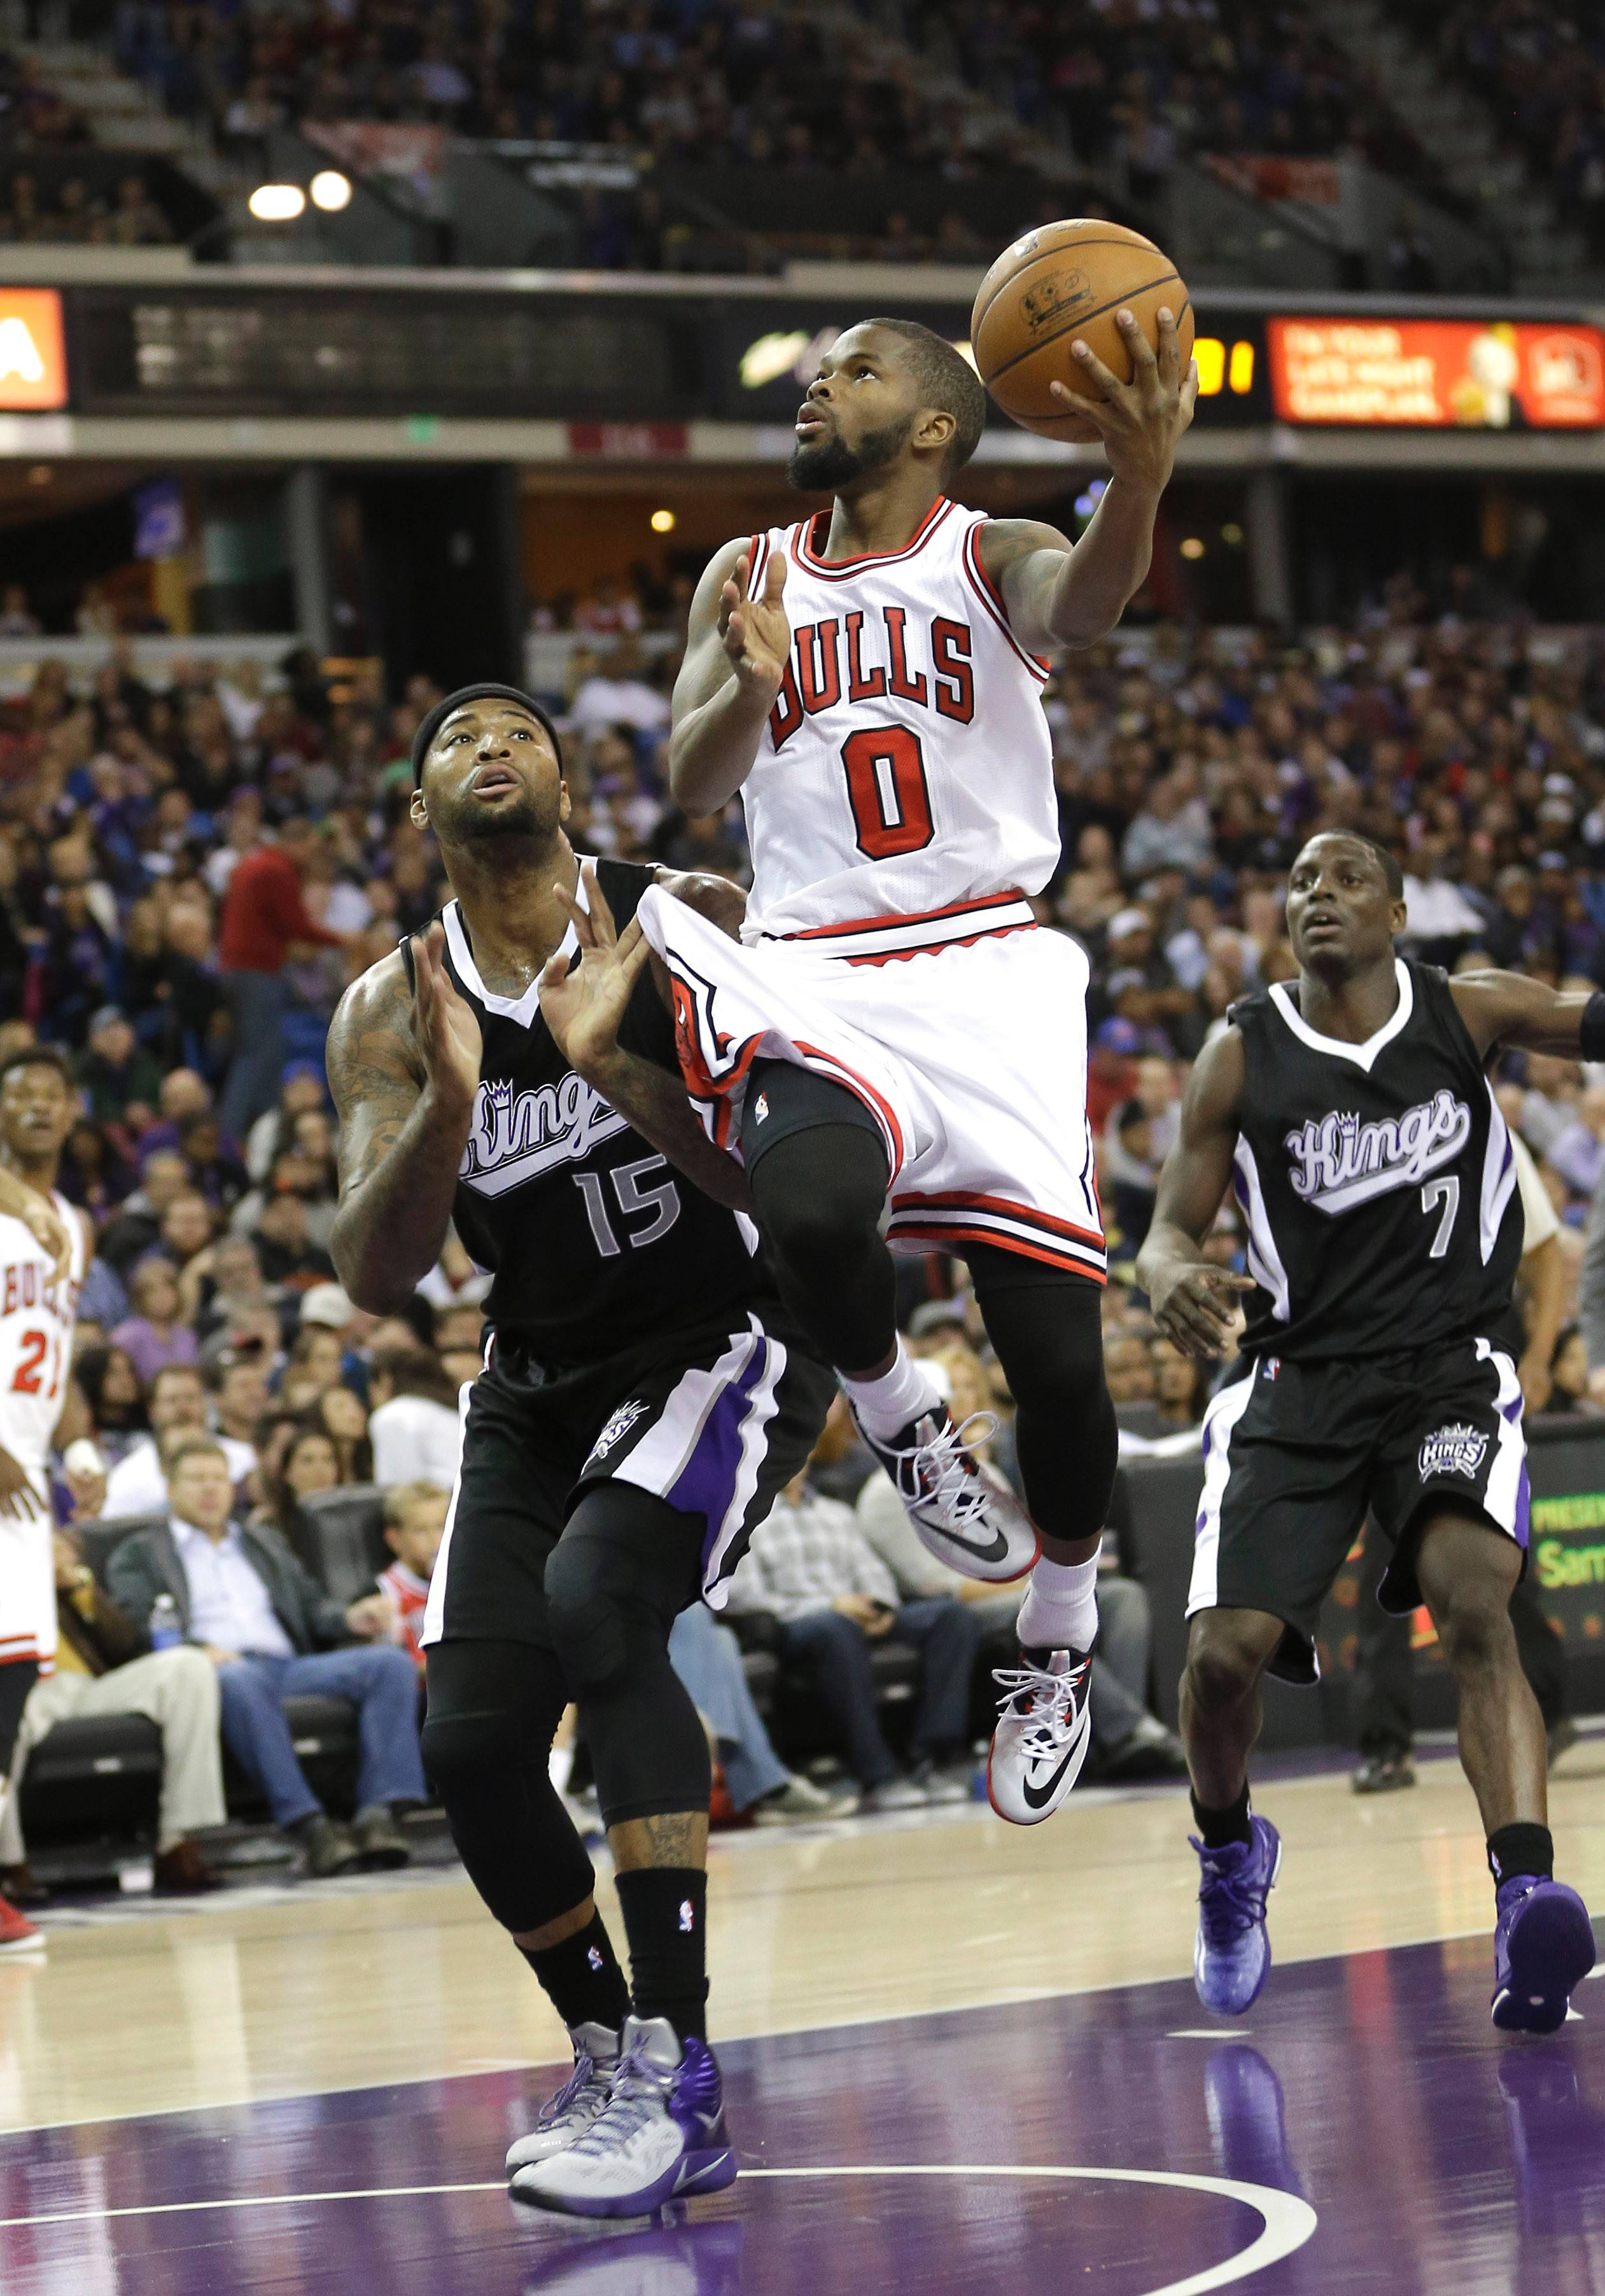 Bulls guard Aaron Brooks, center, drives to the basket against DeMarcus Cousins, as Kings guard Darren Collison, right, looks on during the first quarter their game Thursday night.